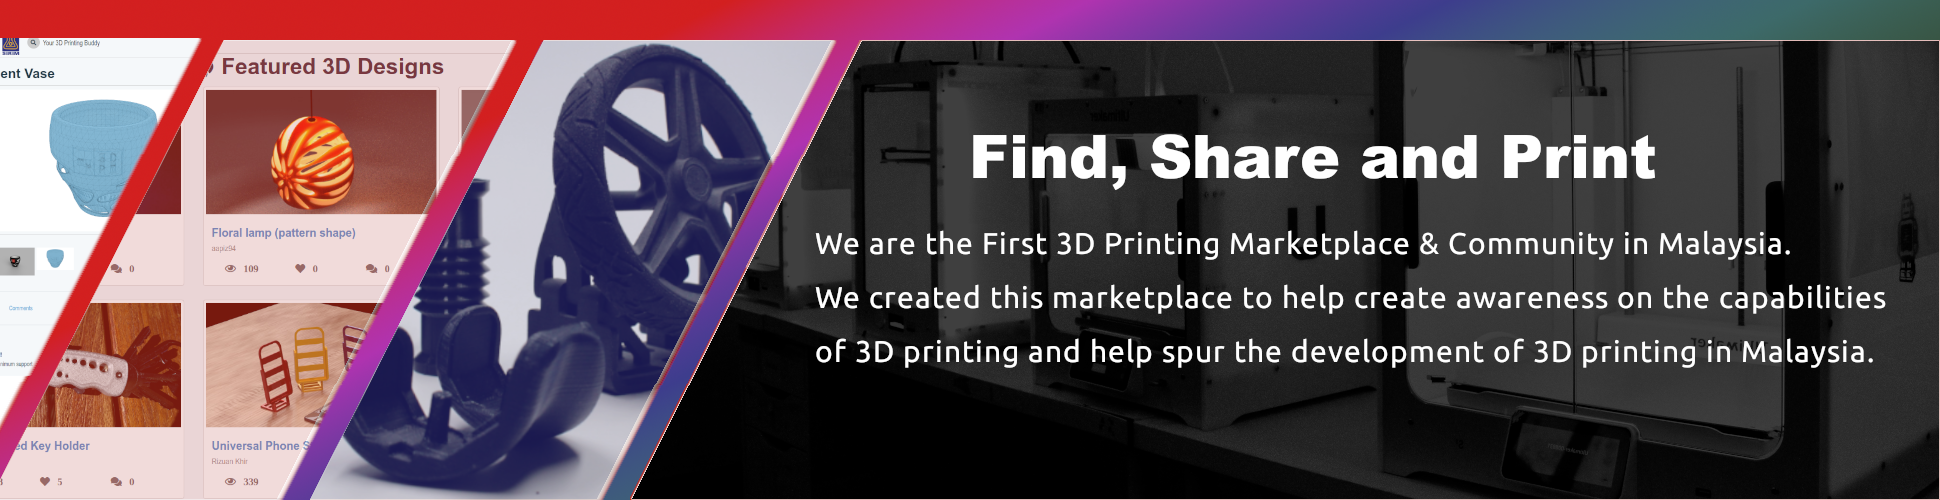 find-share-print